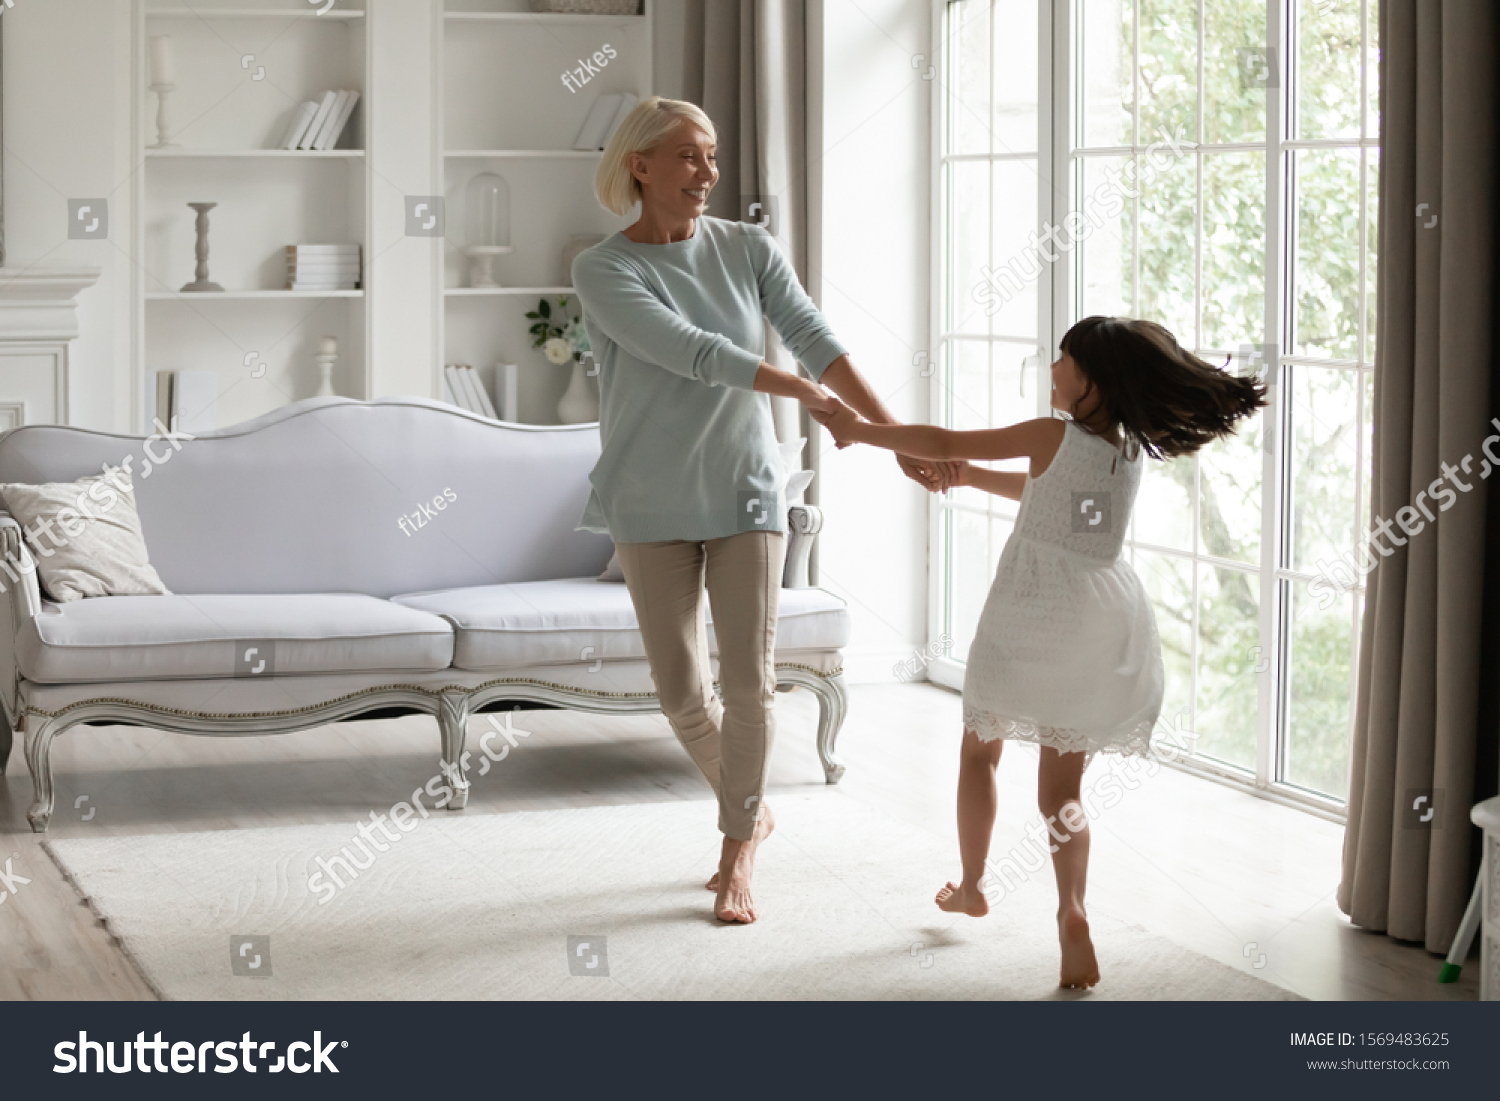 Healthy active 50s grandmother holding hands little granddaughter dancing or spinning standing barefoot in modern warm living room enjoy priceless time together at funny weekend activities concept #1569483625